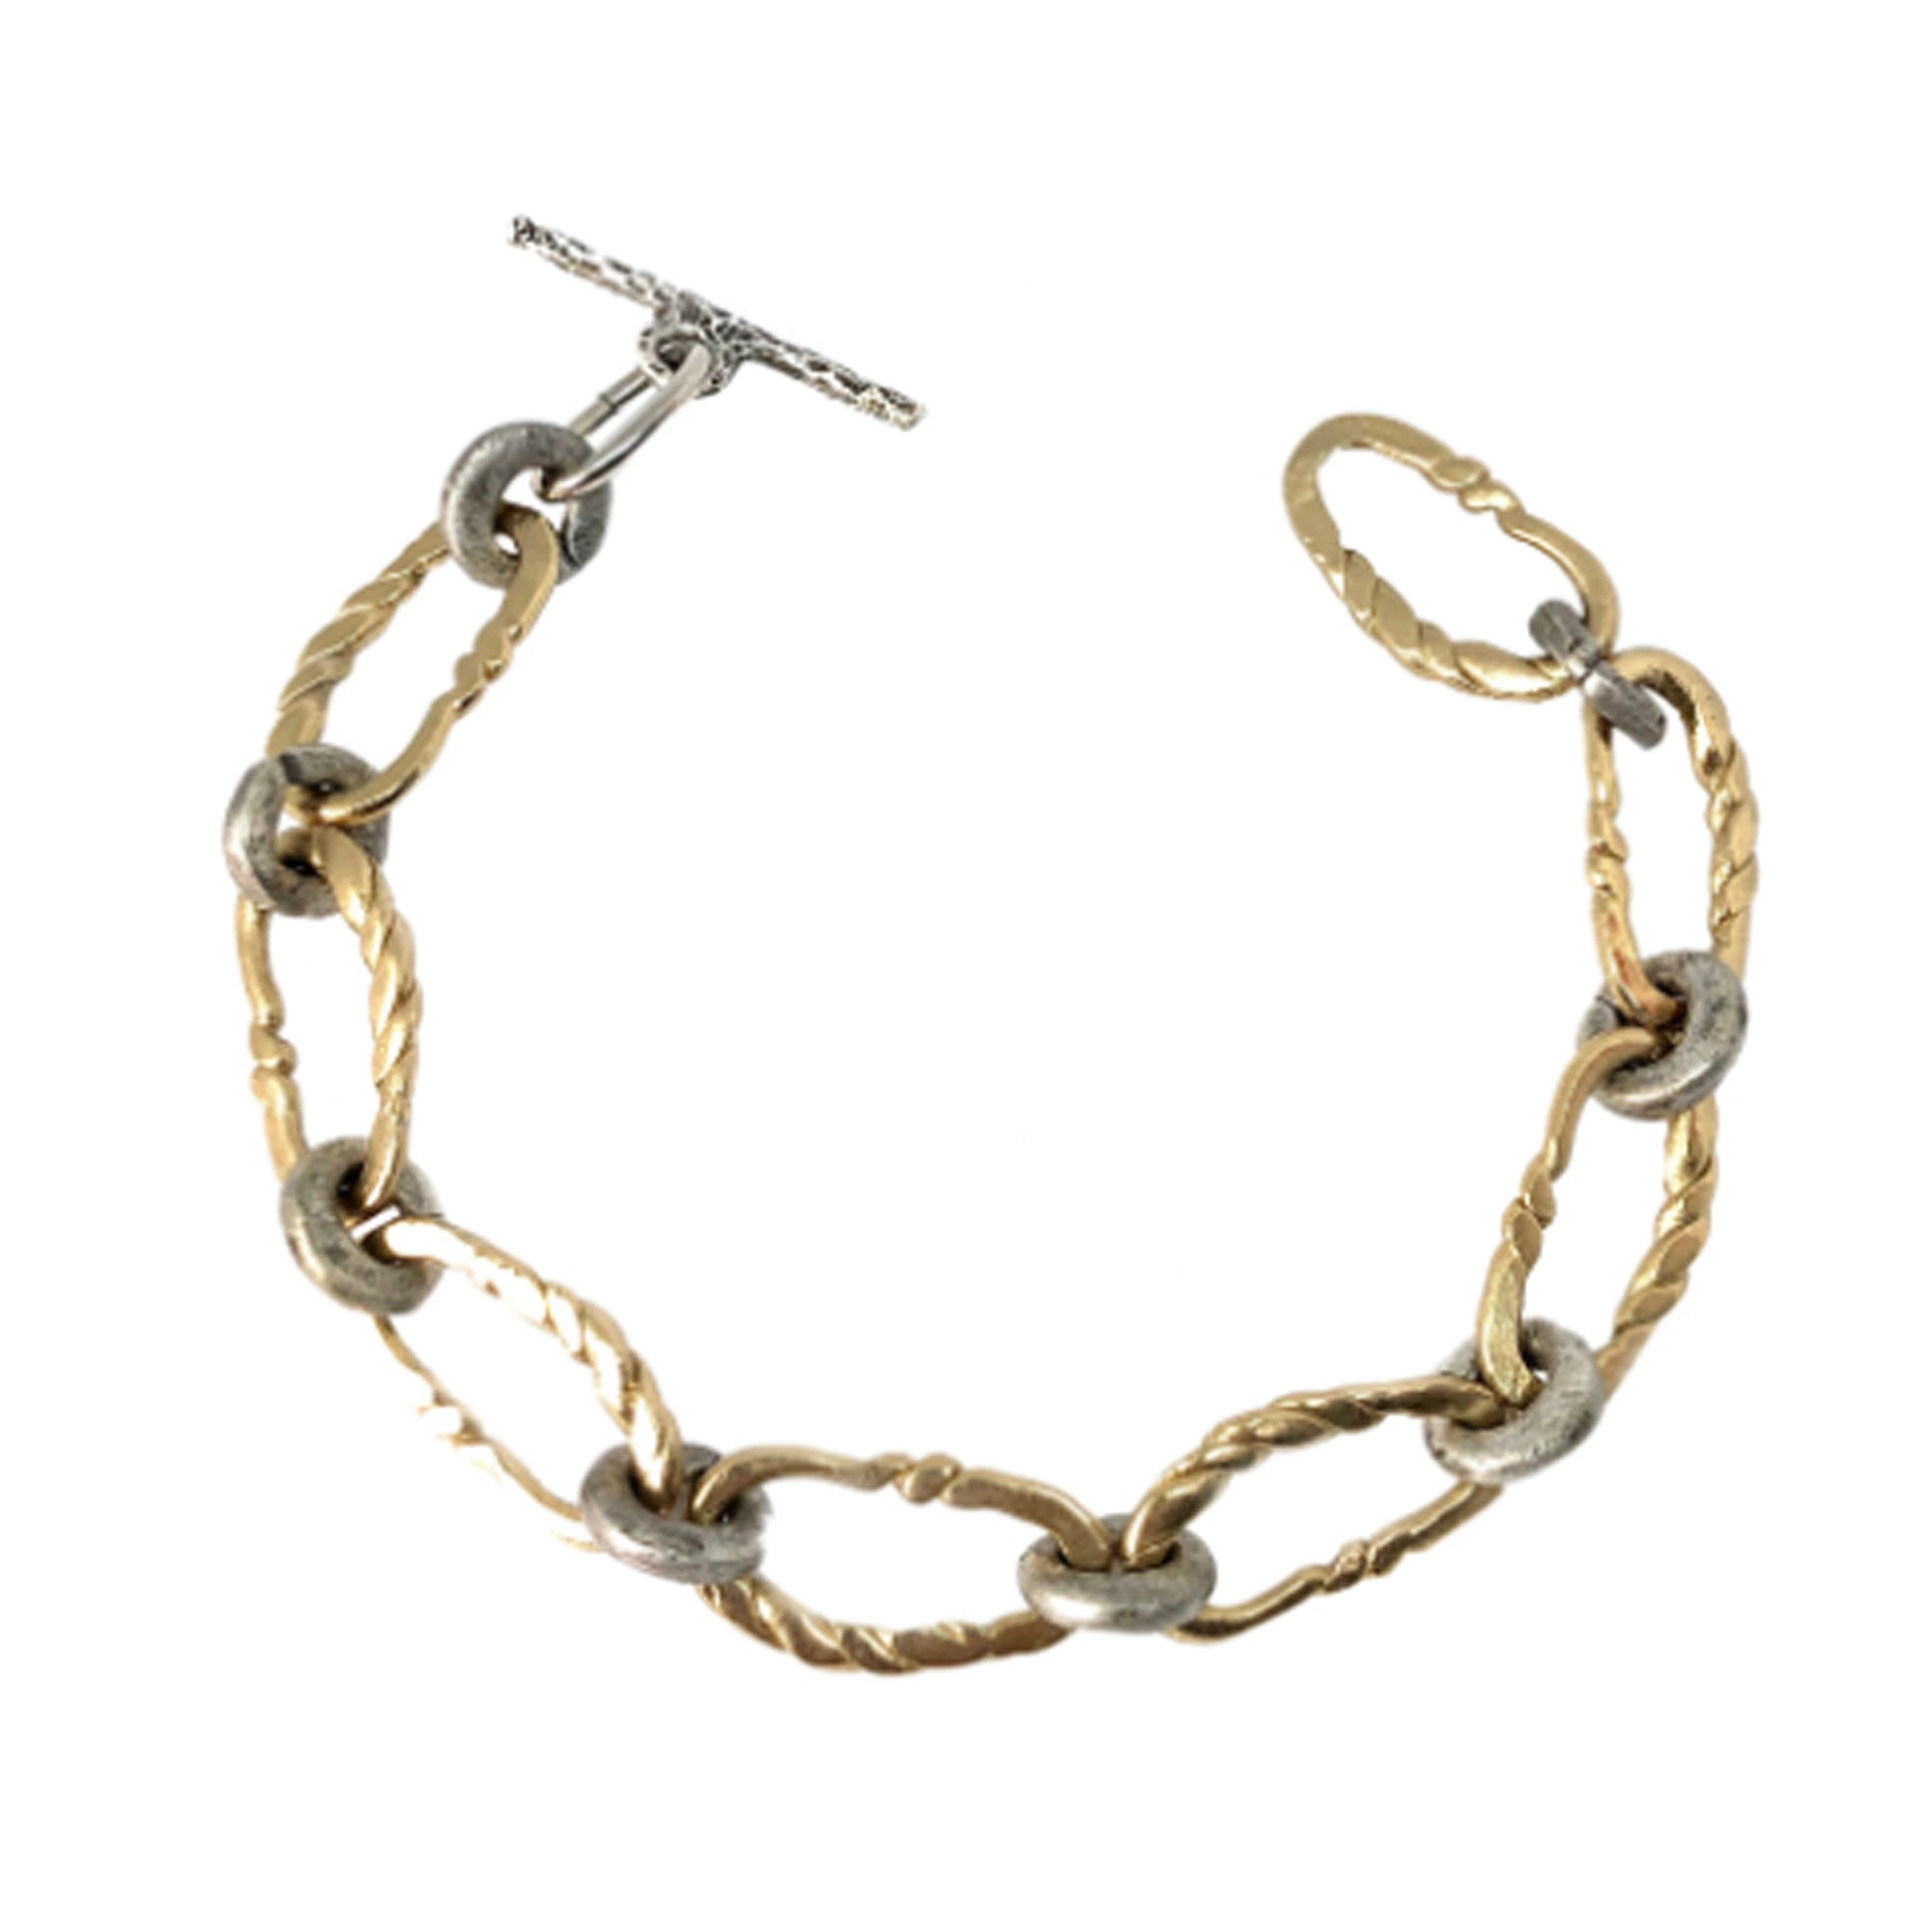 GOLD TWISTED LINK BRACELET